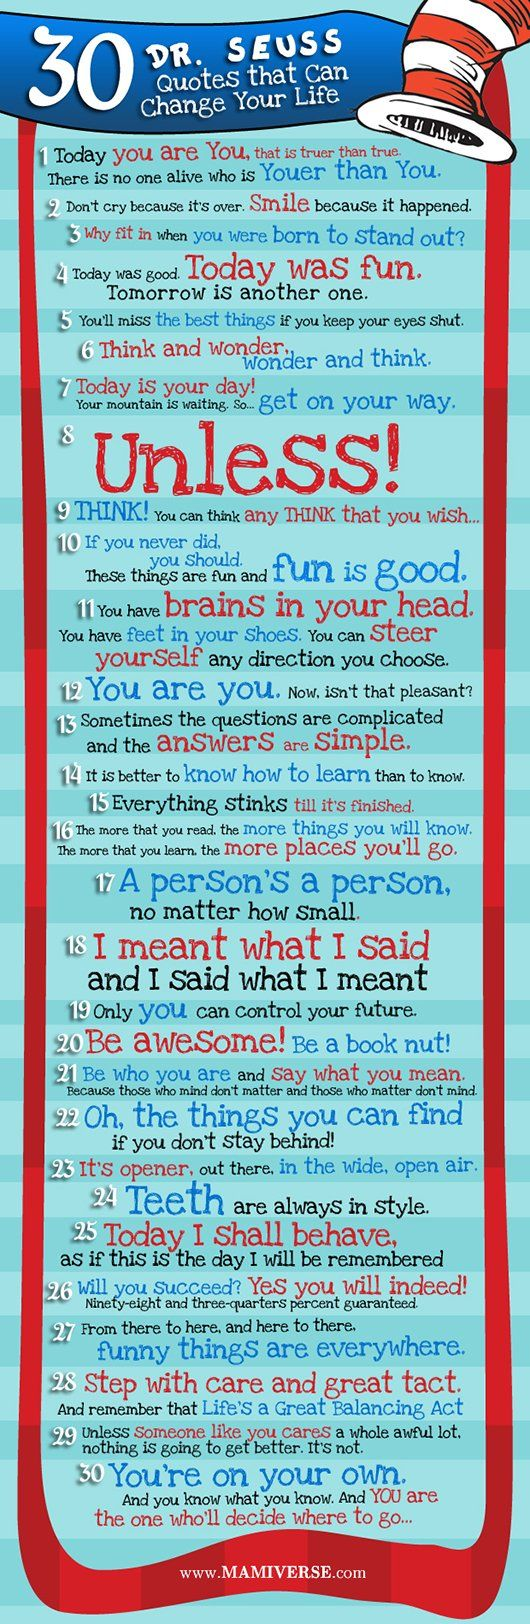 30 Positive Inspirational Quotes From Dr. Seuss  photo